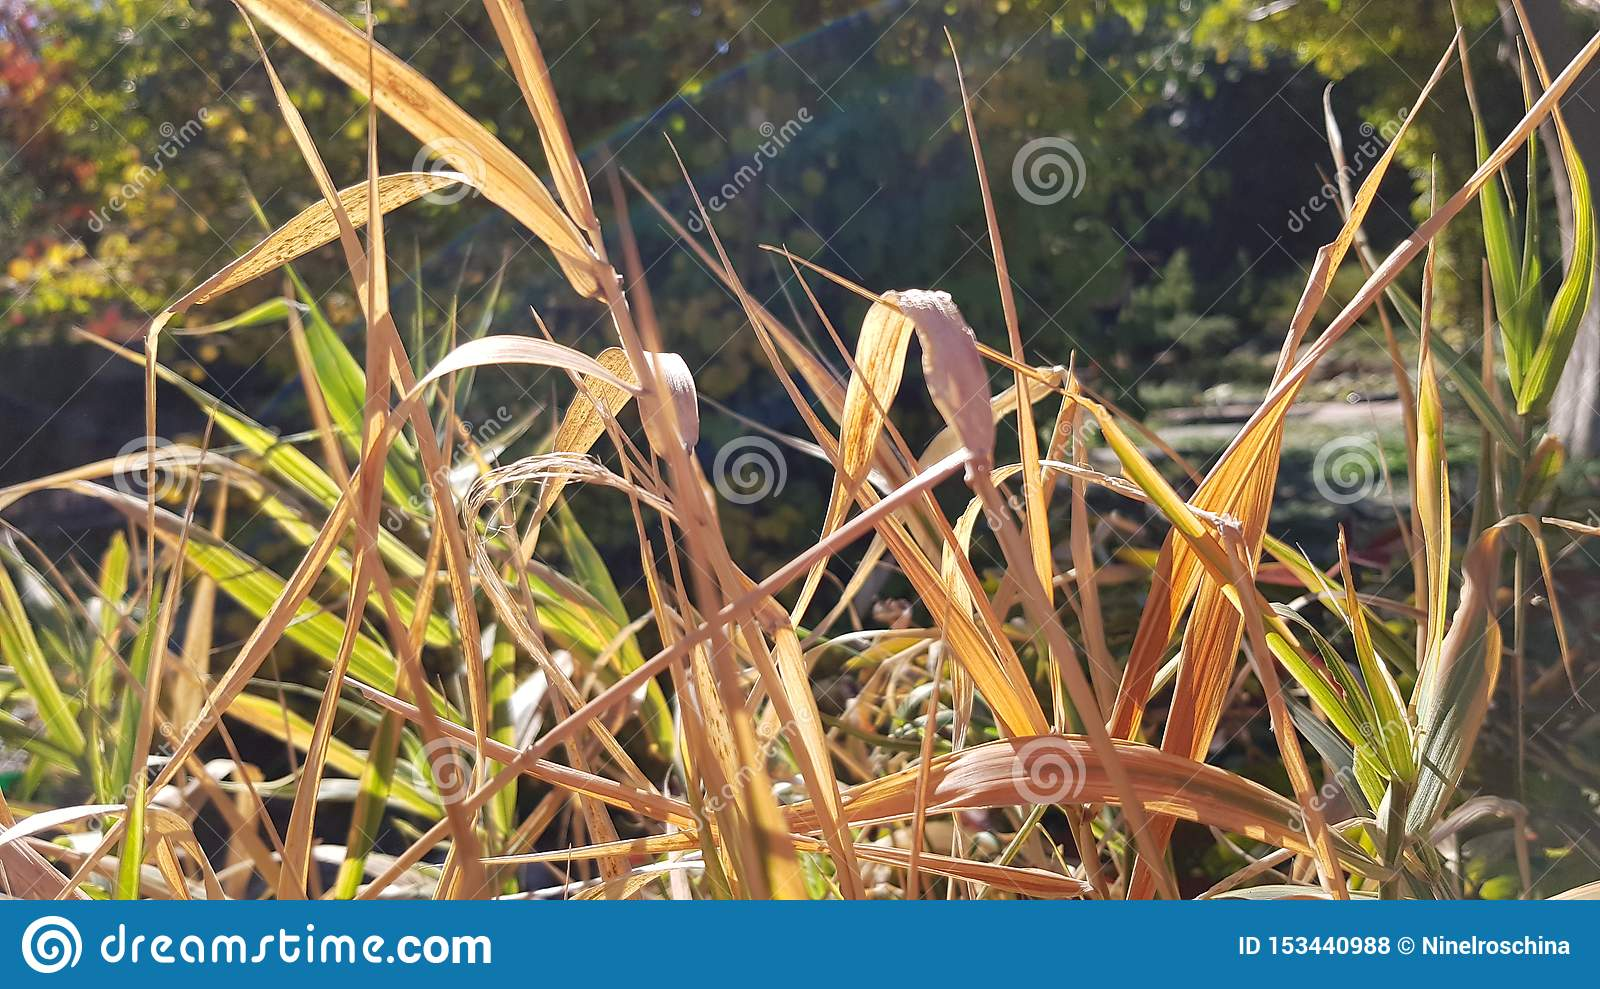 Bright Sunlight On Colorful Grass Bushes Of Garden Plants Stock